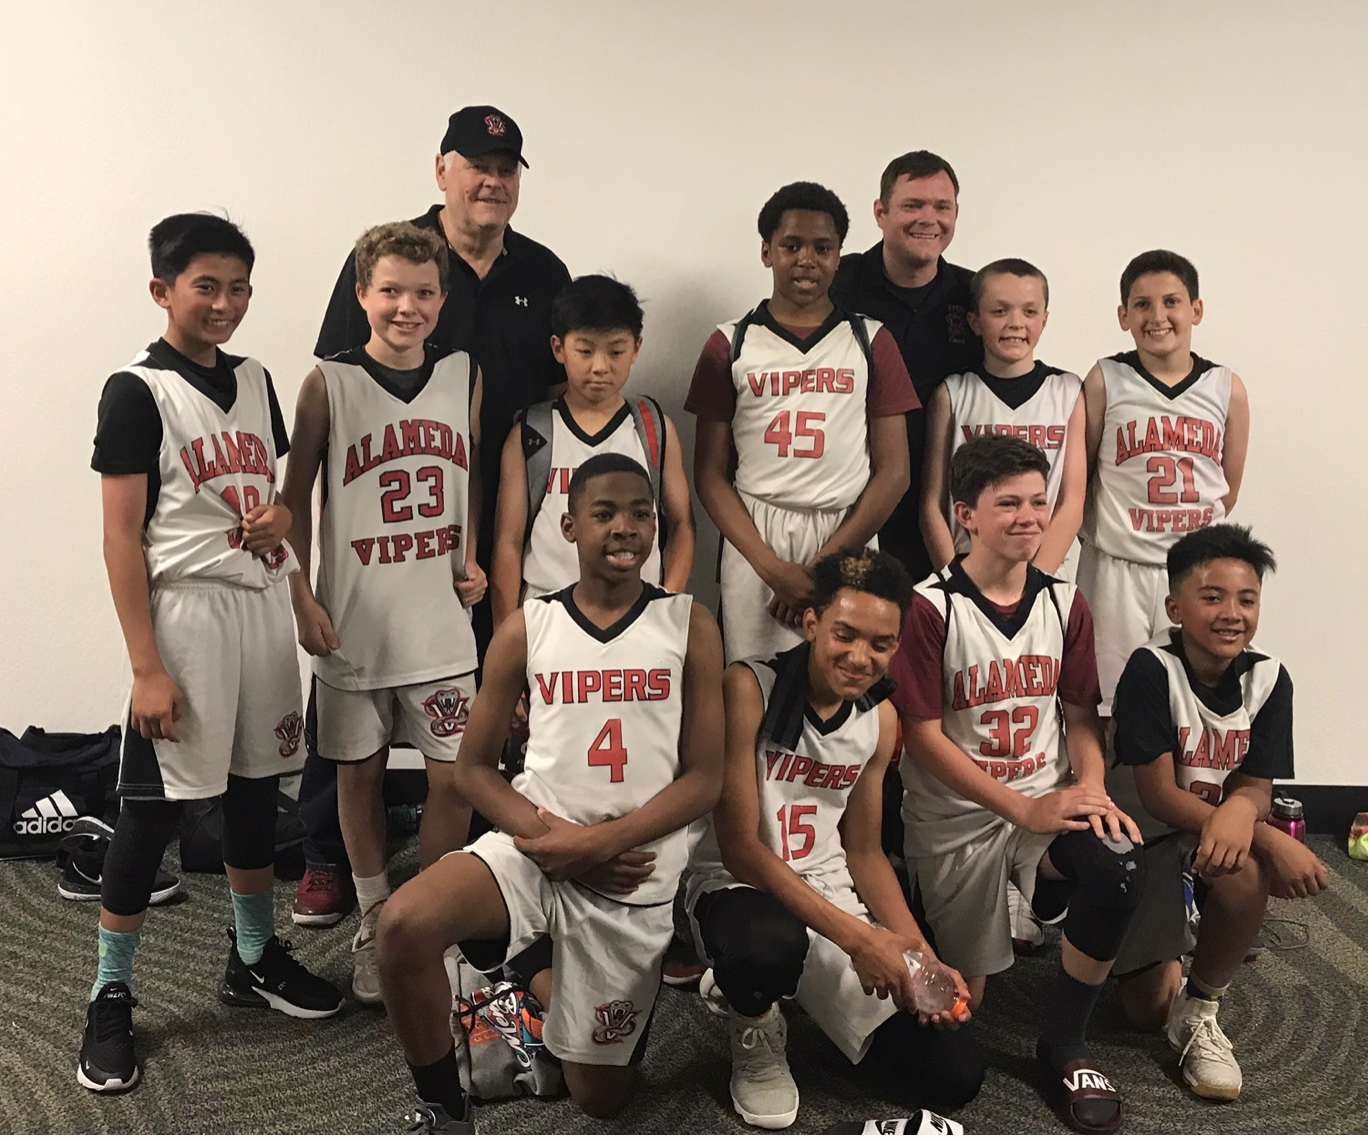 6th Grade Vipers - Team Rendle